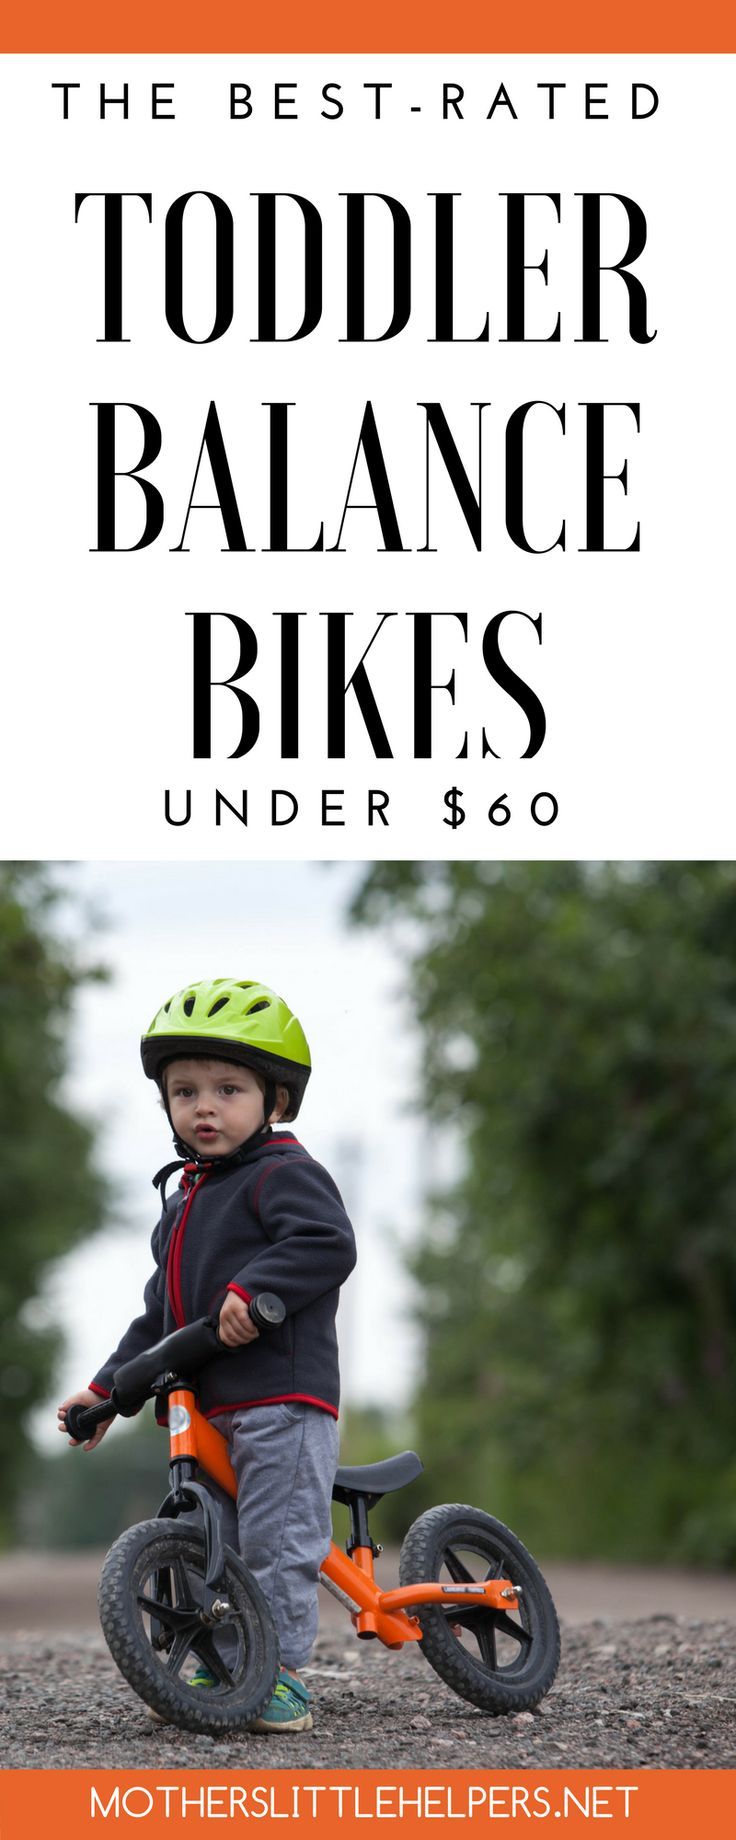 Here you'll find the Best-Rated Toddler Balance Bikes under $60. Are you planning to buy your toddler a balance bike for Christmas? A toddler bike is a unique gift and stands above the other children's toys. It helps your child learn to balance early on, so that it's easier to learn a real bicycle. Wooden strider bikes are very popular, but it's imperative to read the reviews to find out which one will get you the most bang for your buck. This article will take you through the pros and cons…